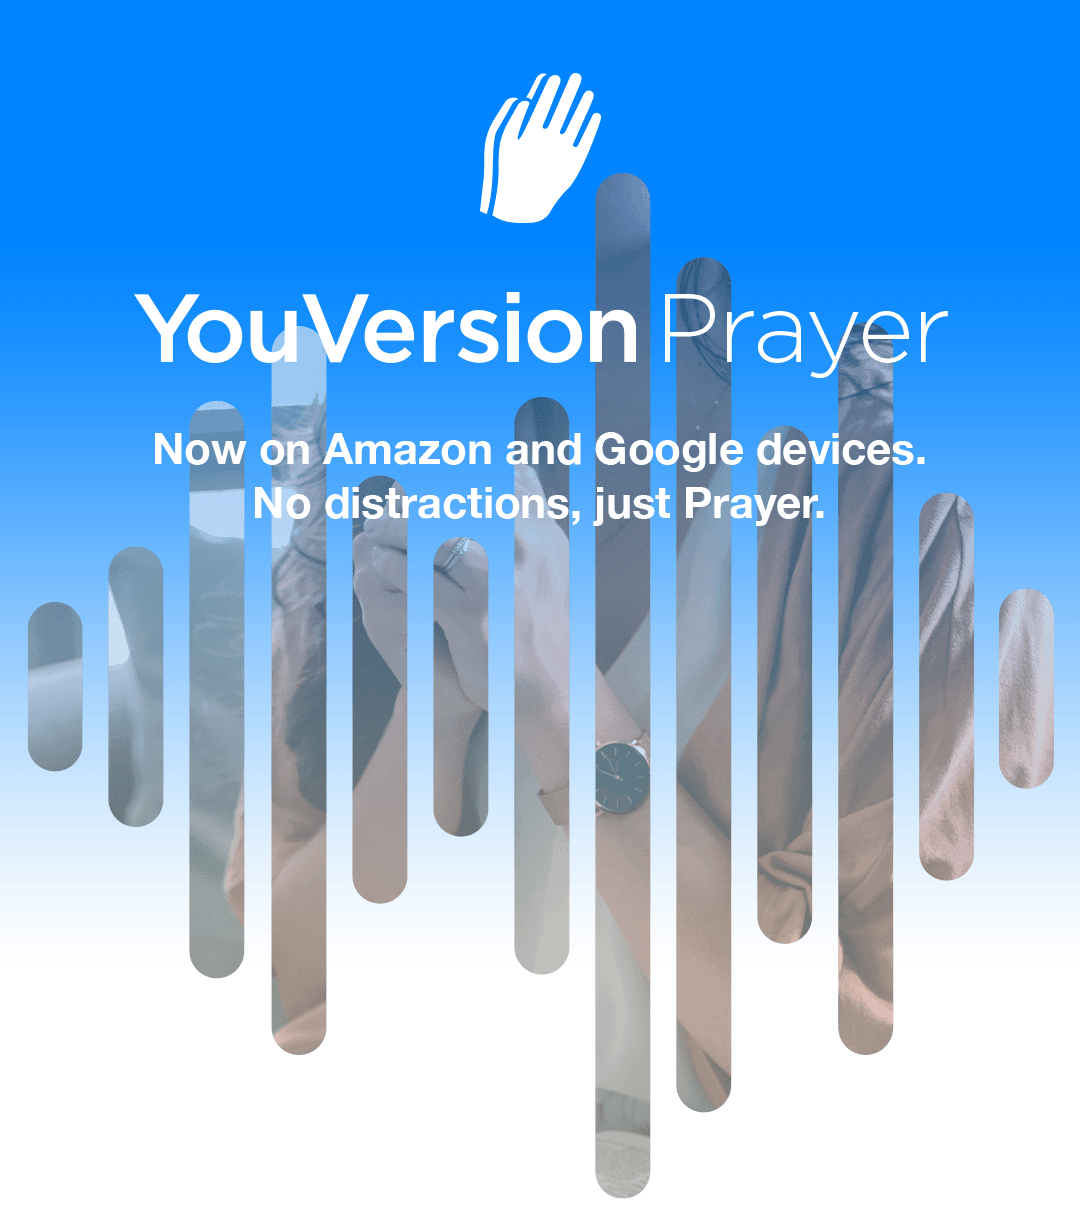 YouVersion Prayer - Now on Amazon and Google devices. No distractions, just Prayer.